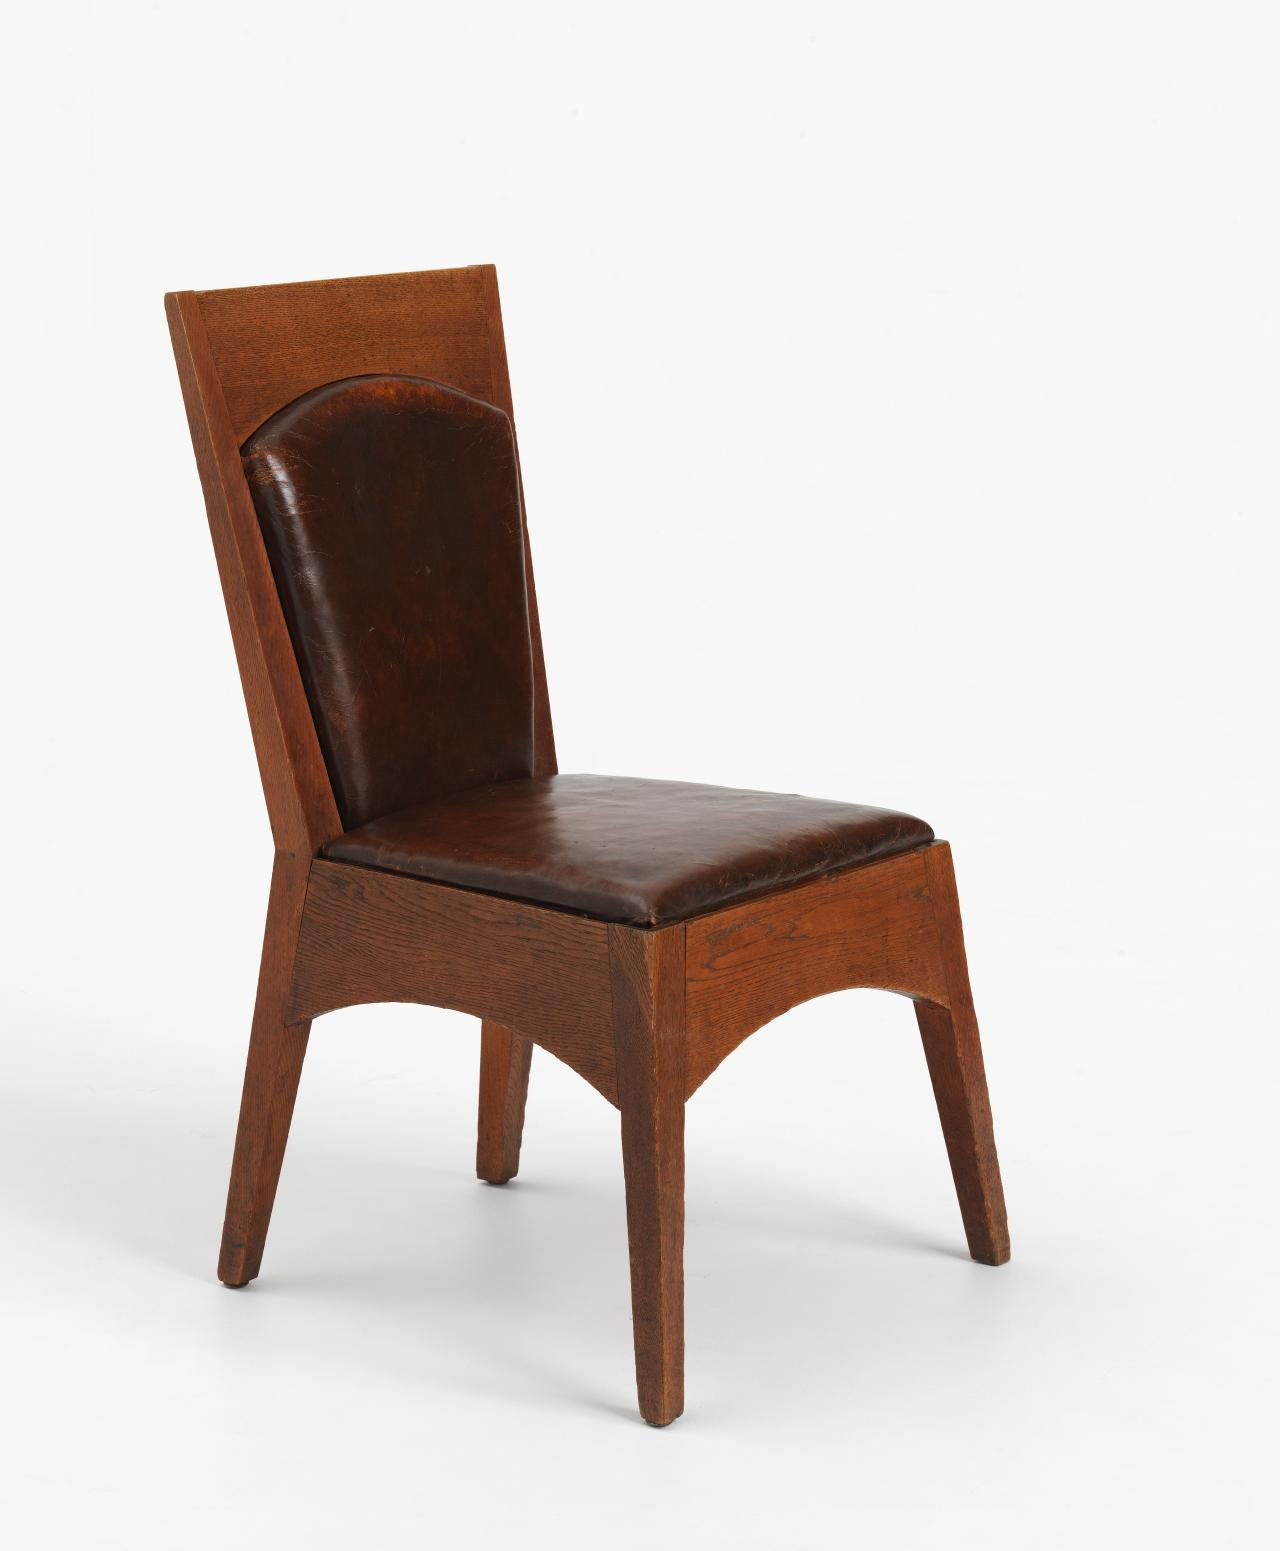 Suite of furniture from Newman College, University of Melbourne: straight chair